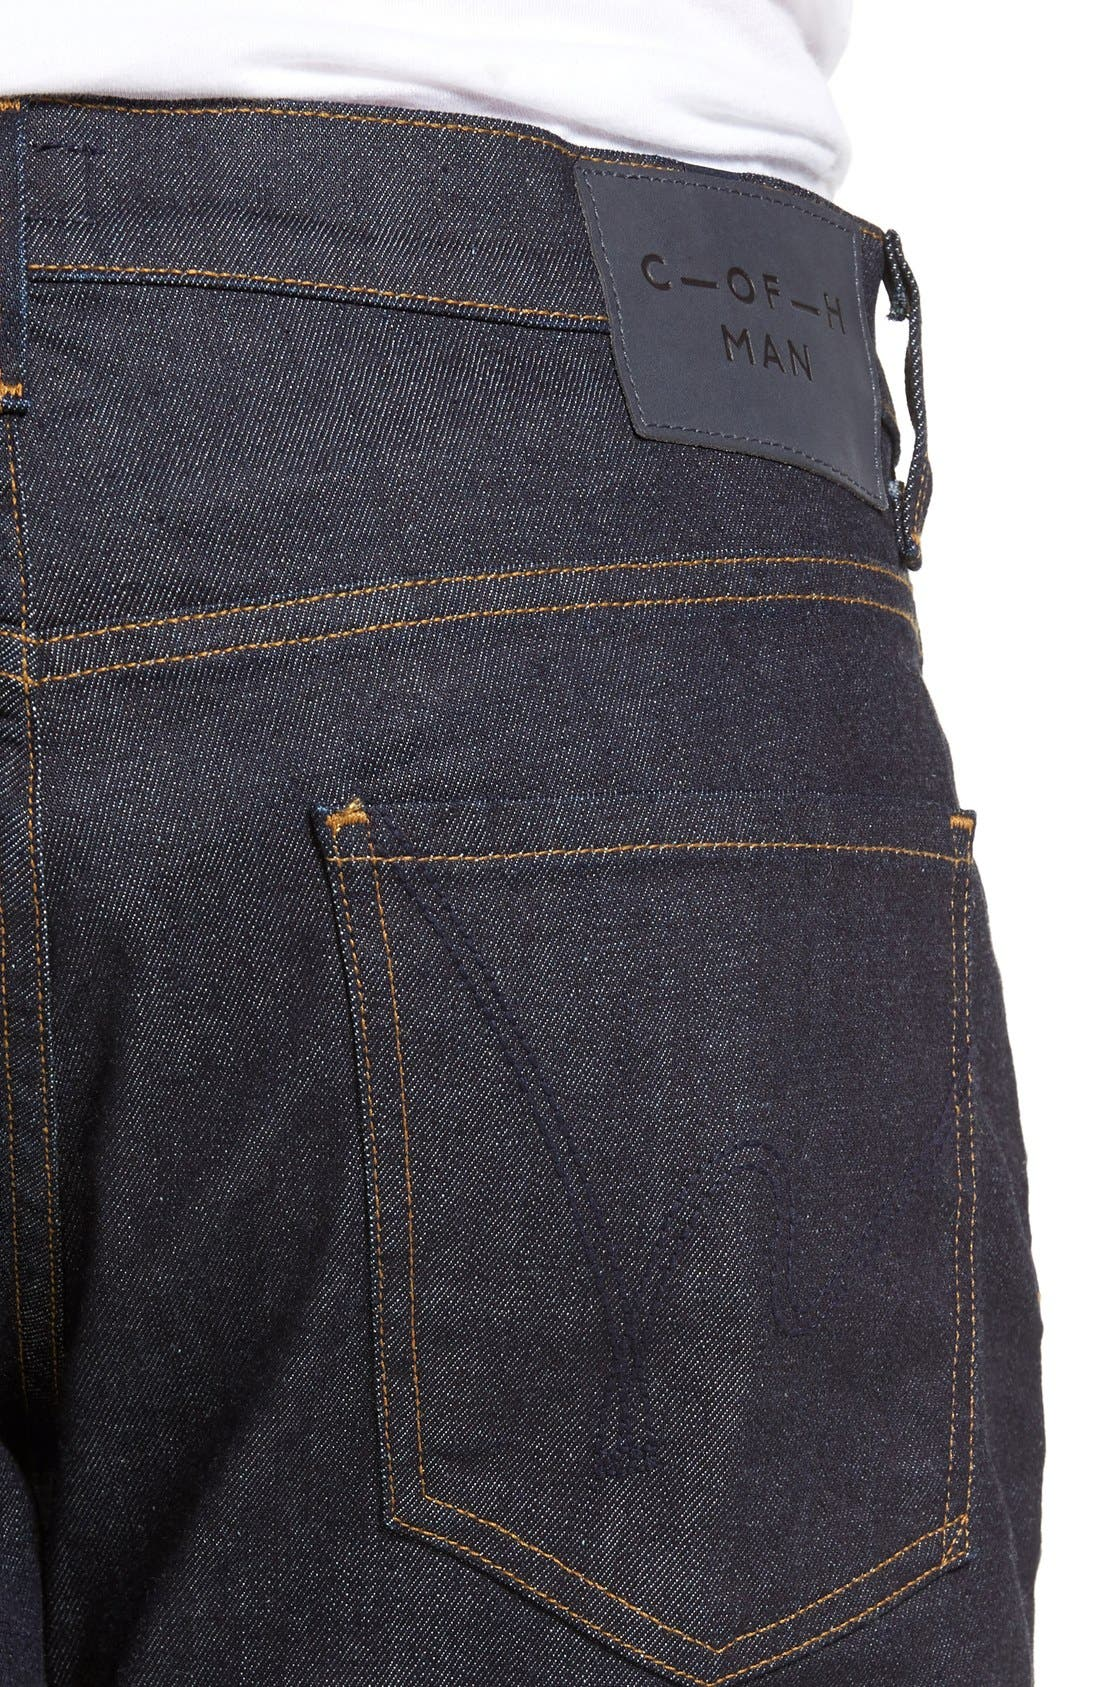 Sid Classic Straight Leg Jeans,                             Alternate thumbnail 4, color,                             Lafayette